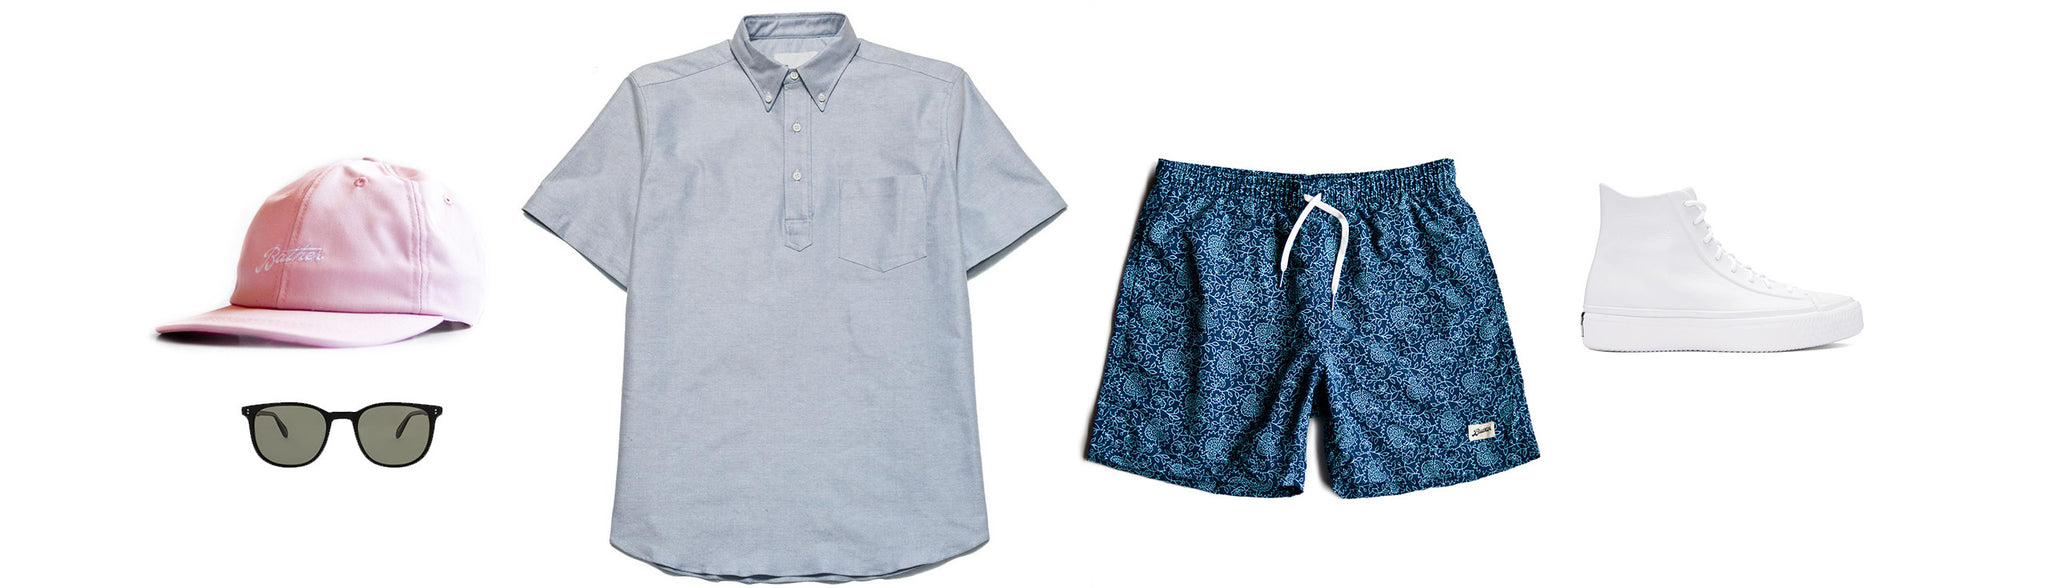 Men's Surf Trunk Outfit